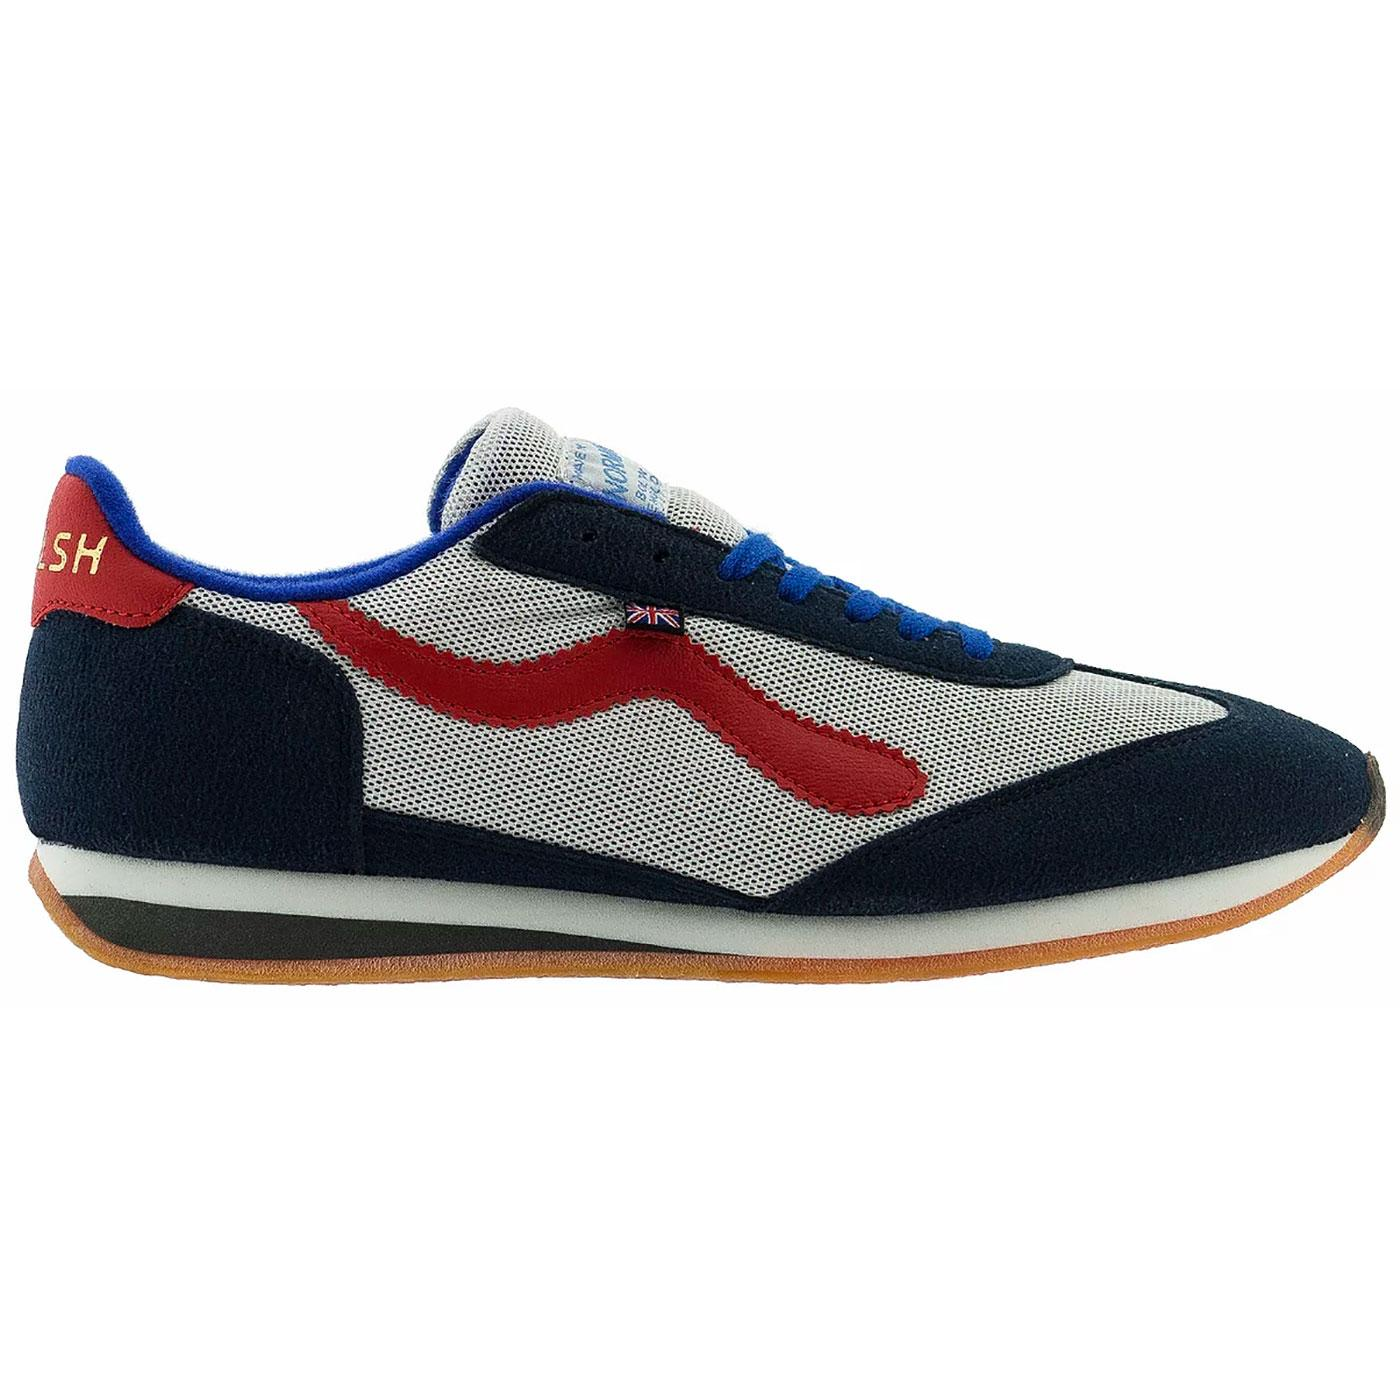 Fierce WALSH Made in England 70s Trainers (R/W/B)